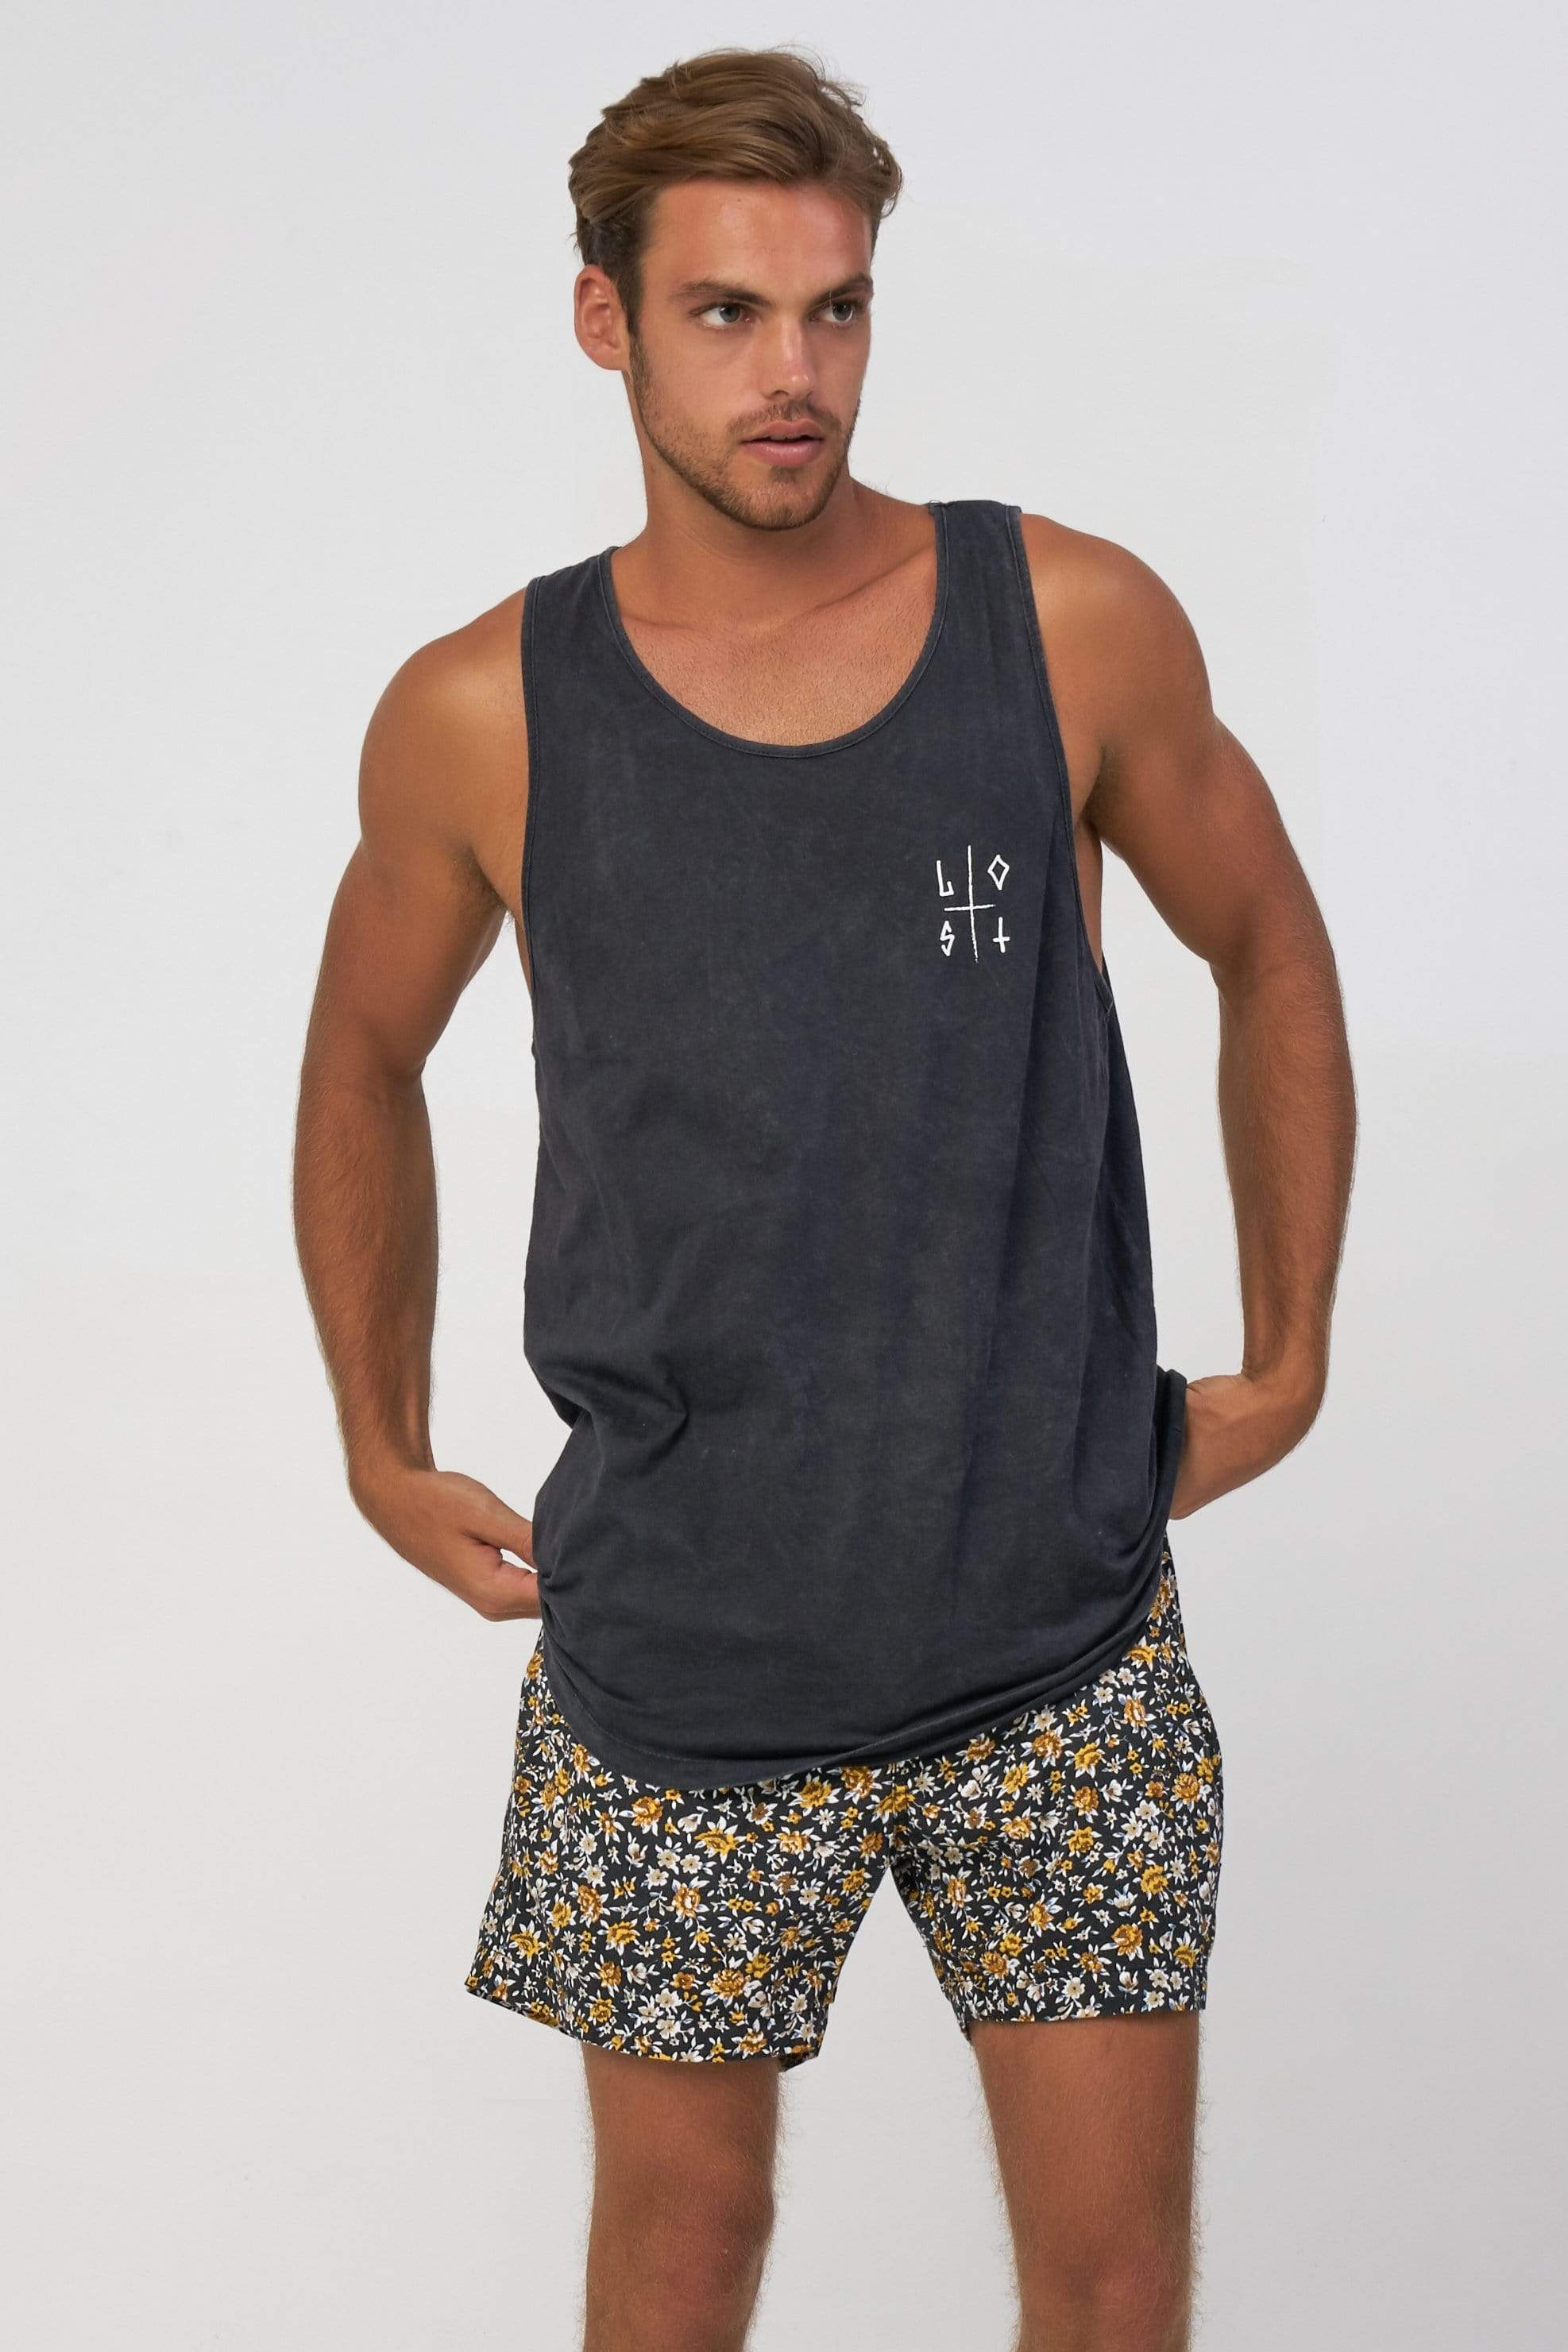 Sing Lost Retro - Man Singlet - LOST IN PARADISE